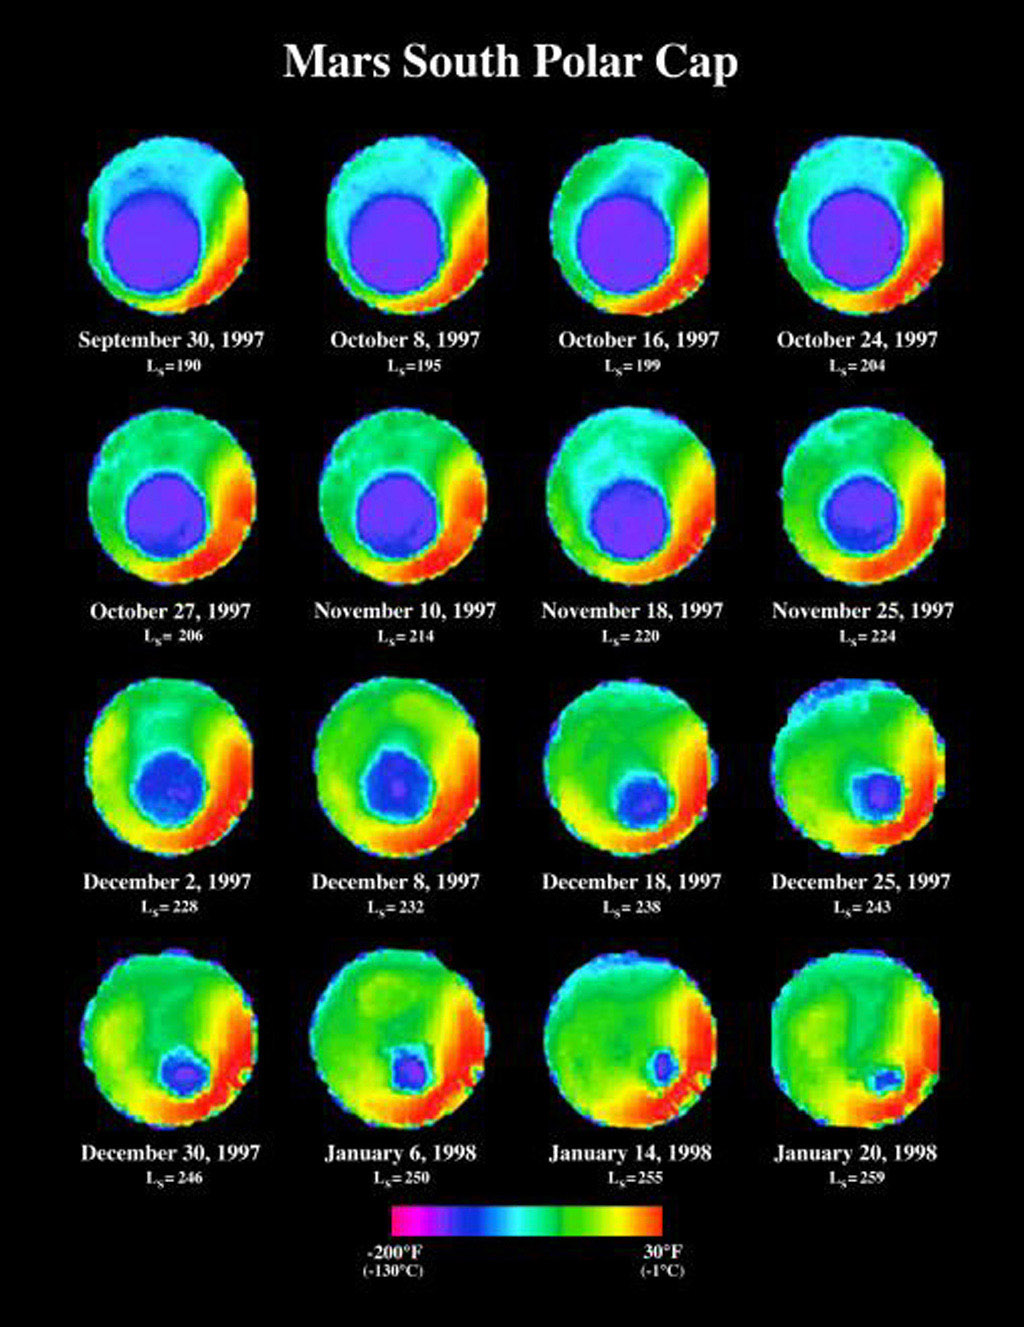 NASA's Mars Global Surveyor shows the seasonal change of the south polar ice cap on Mars over a four-month period mapped by color-coding the variation in 25-micron wavelength brightness temperatures.